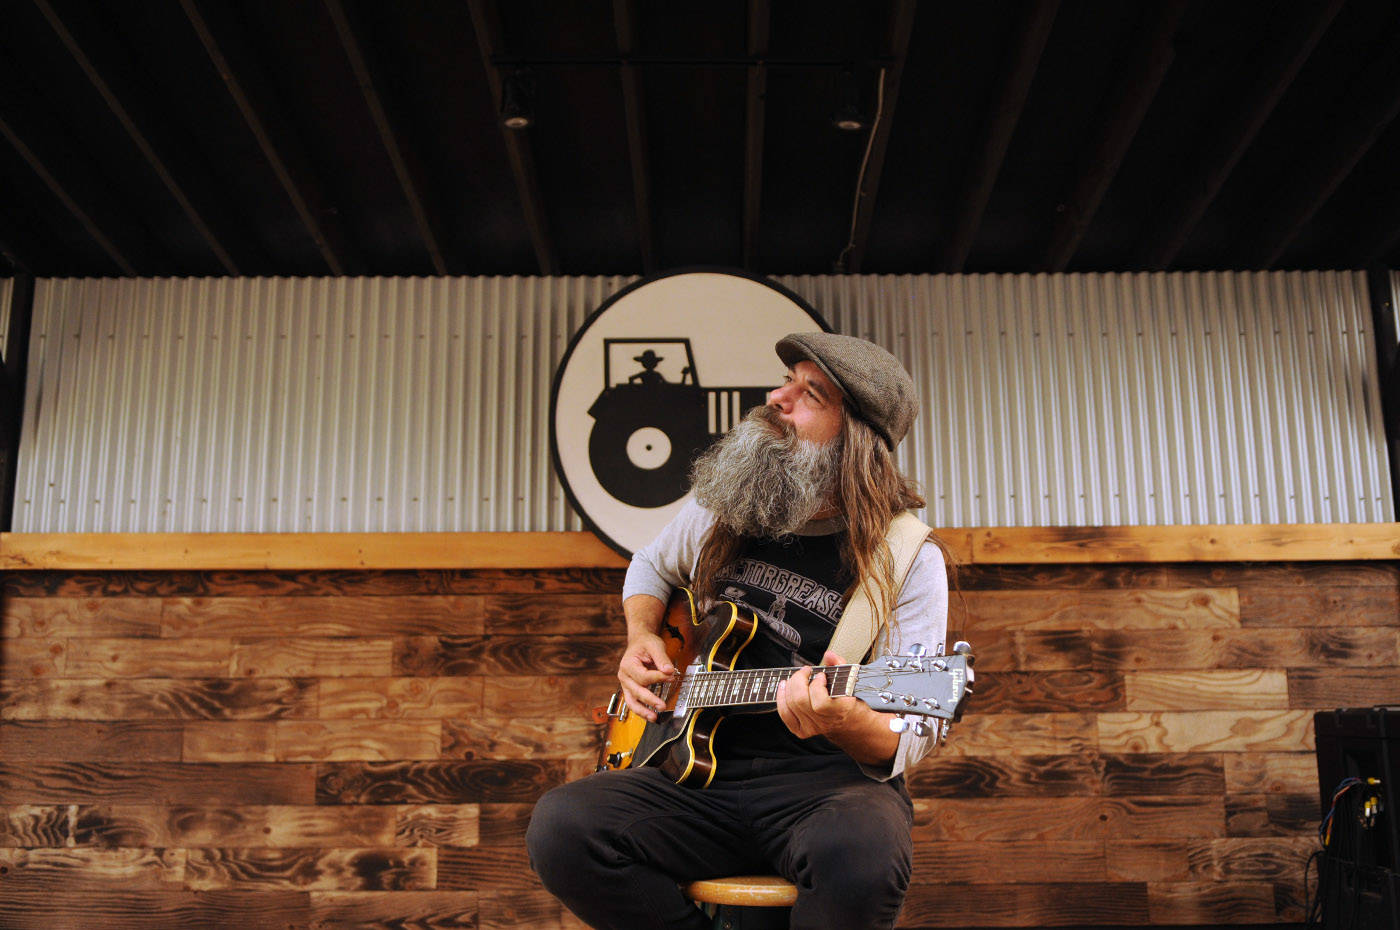 """Tractorgrease owner Jeff Bonner is closing his live music venue in September due to debt incurred during the pandemic, despite it being a """"highly successful"""" business, he said. (Jenna Hauck/ Chilliwack Progress)"""